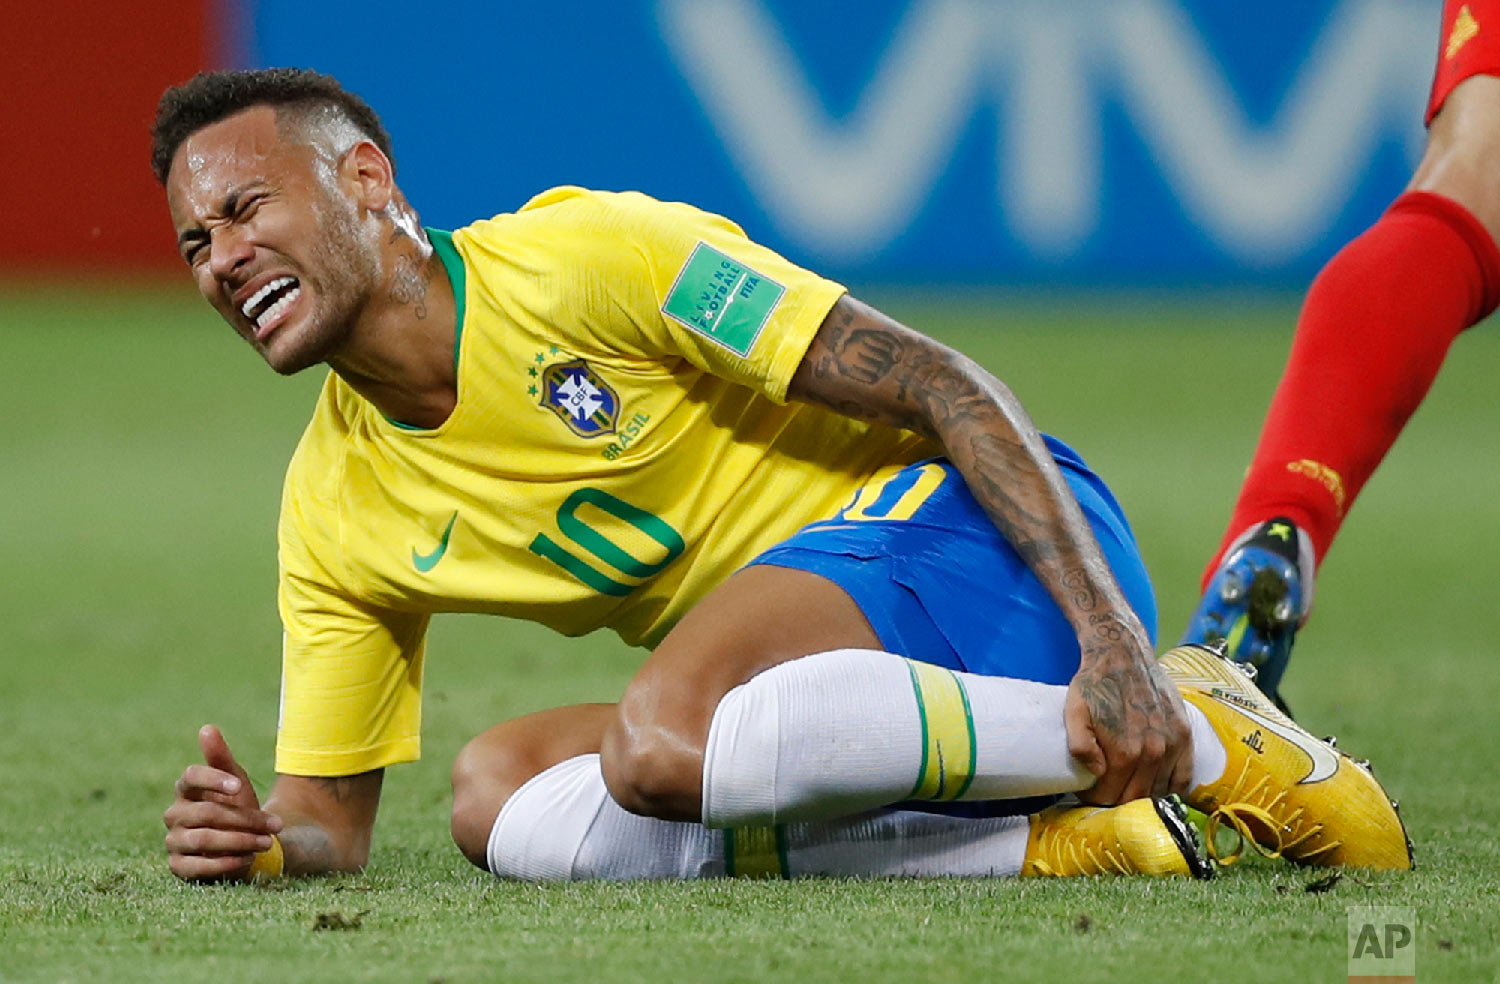 Brazil's Neymar holds his shinbone during the quarterfinal match between Brazil and Belgium at the 2018 soccer World Cup in the Kazan Arena, in Kazan, Russia on July 6, 2018. (AP Photo/Francisco Seco)